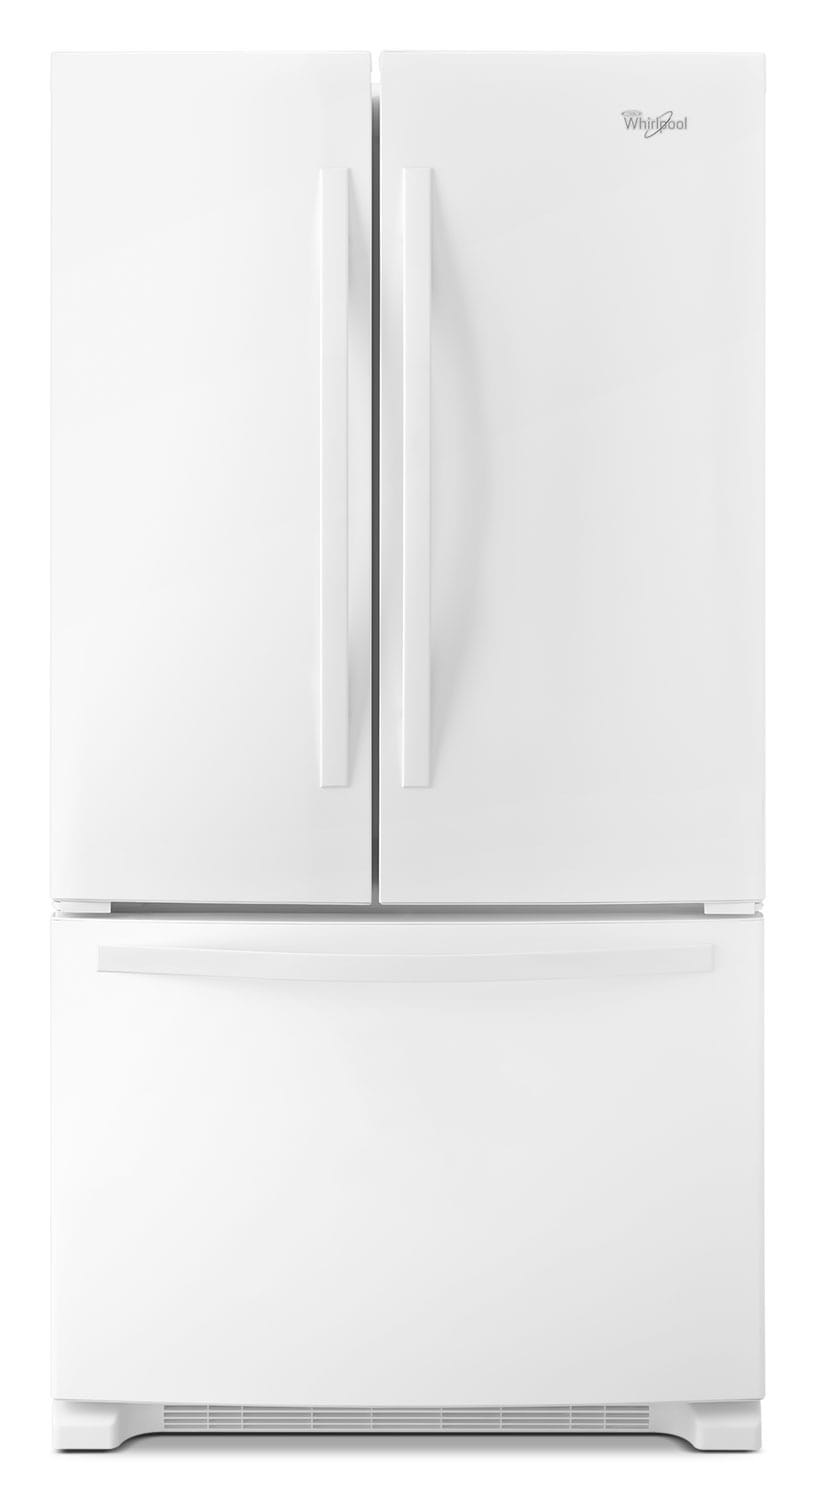 Whirlpool White French Door Refrigerator (22 Cu. Ft.) - WRF532SNBW